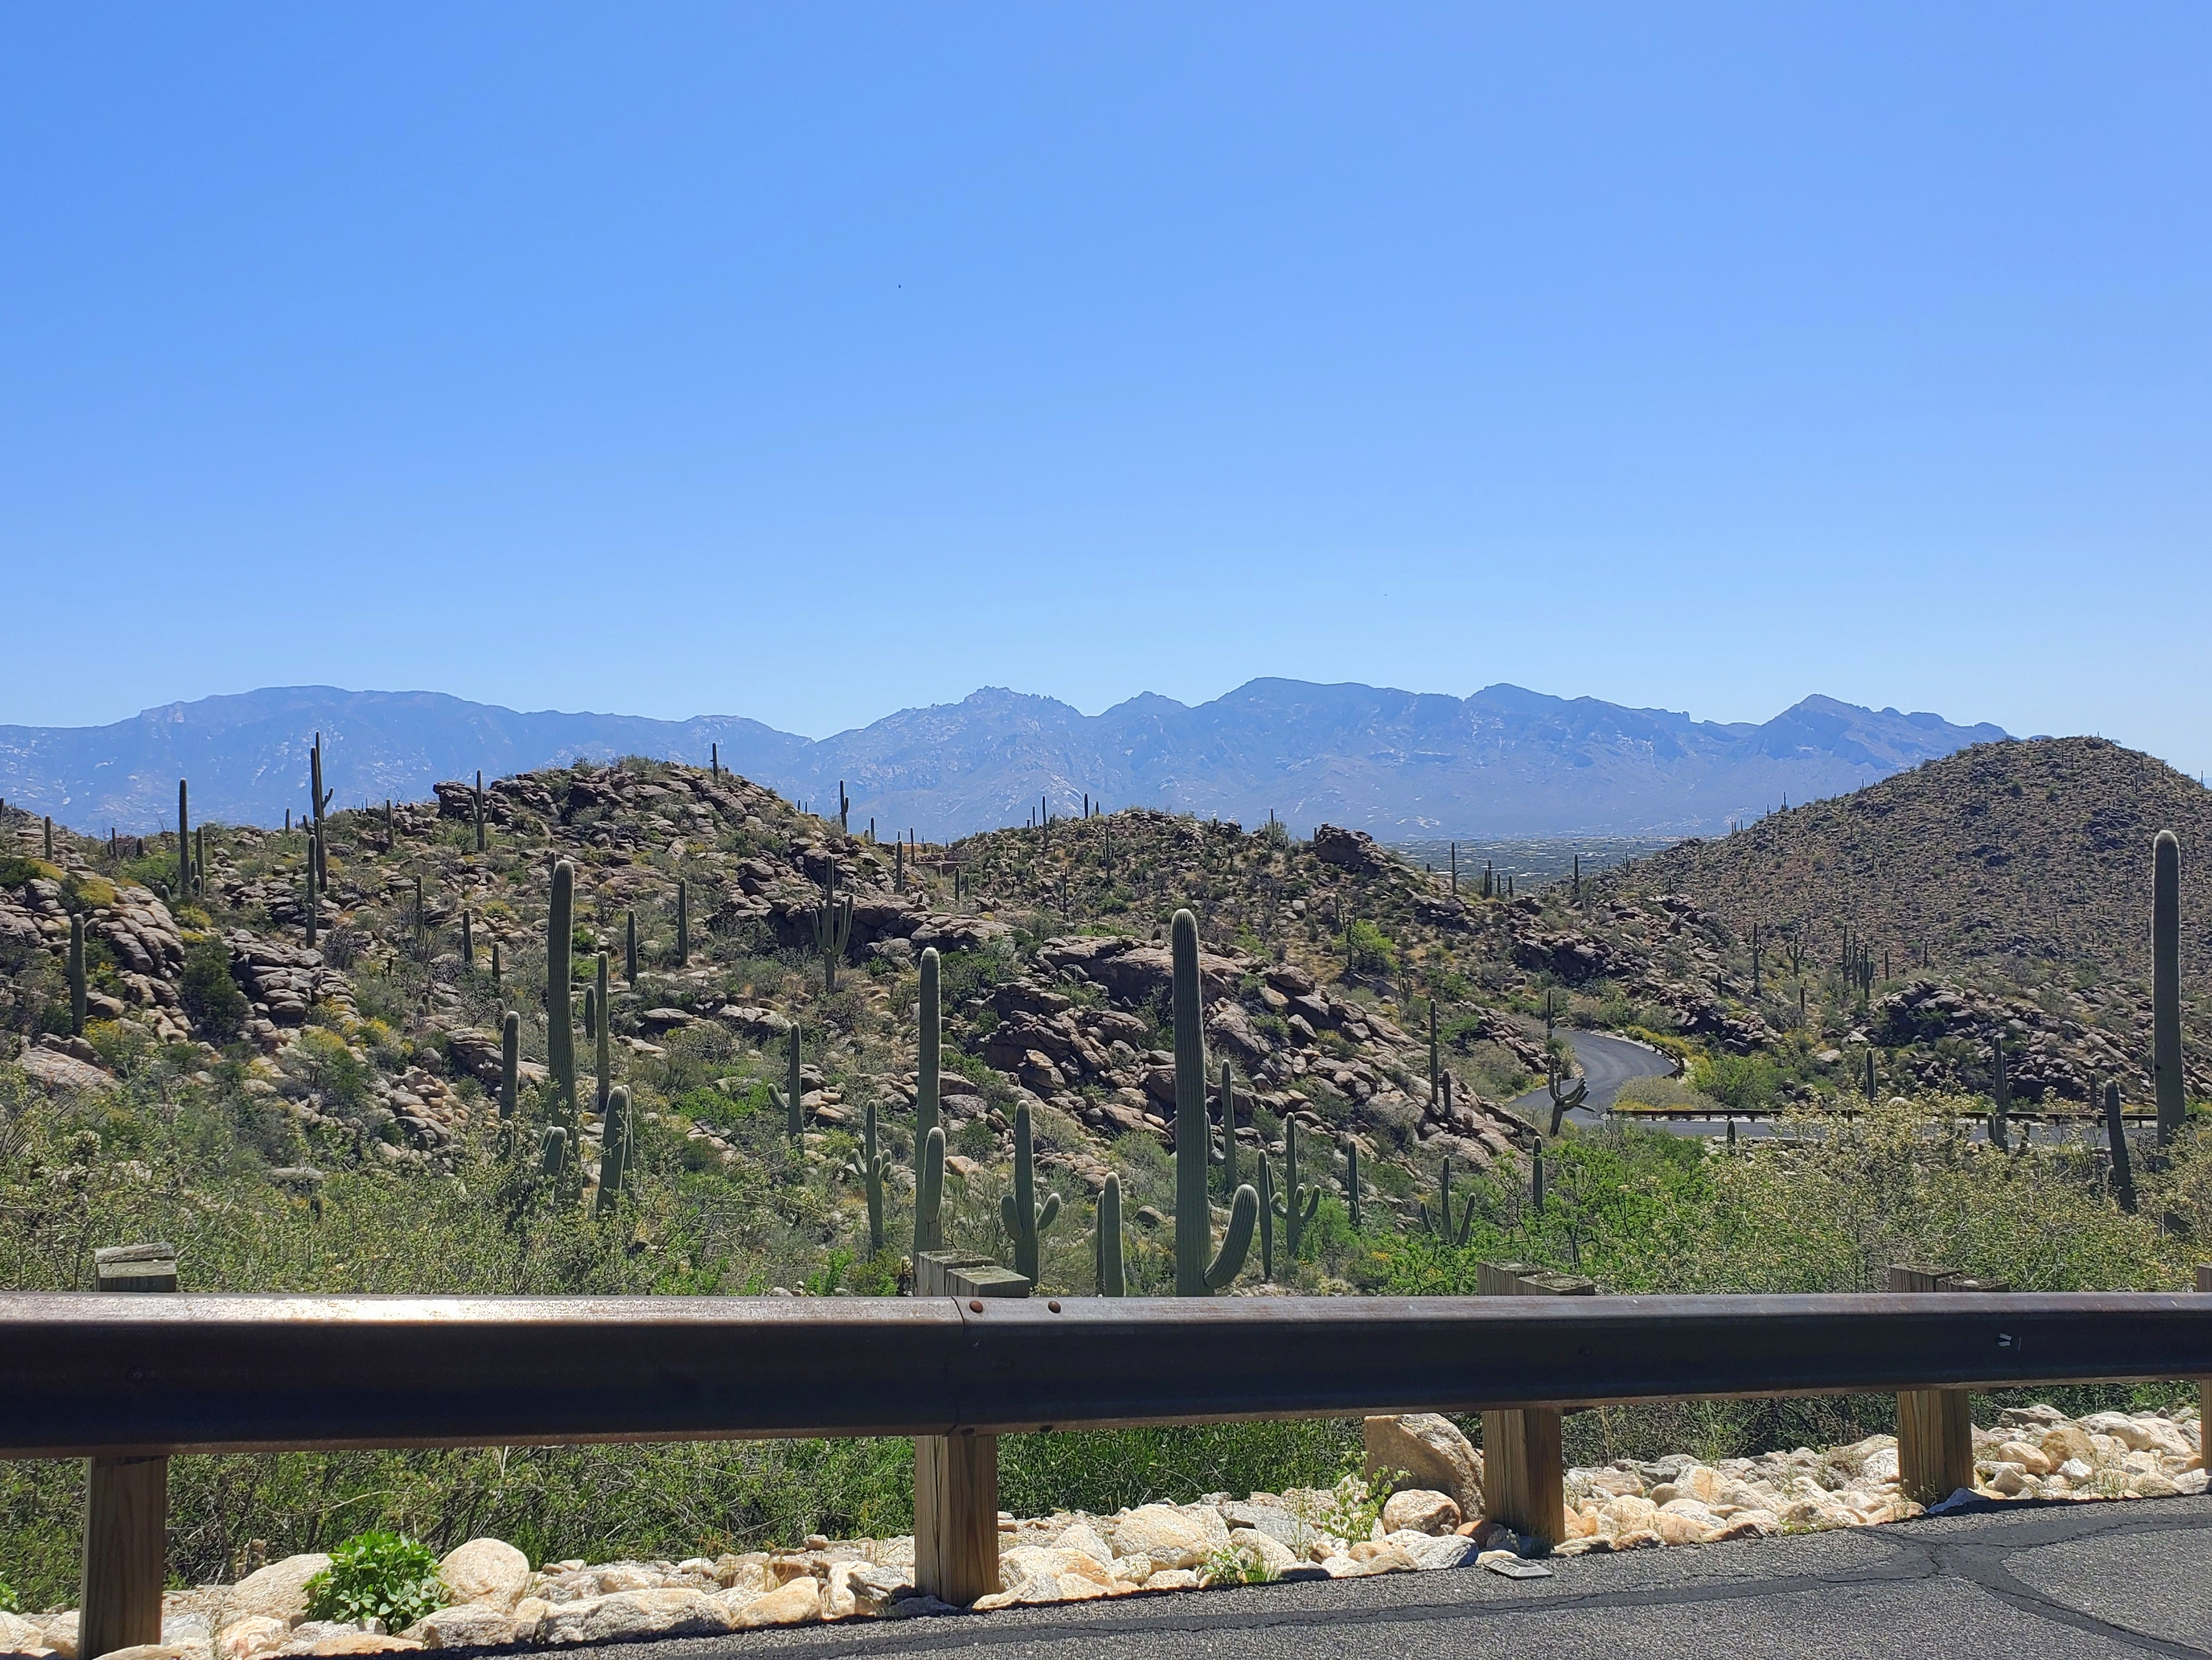 Layers of hills and mountains in Saguaro Ranch